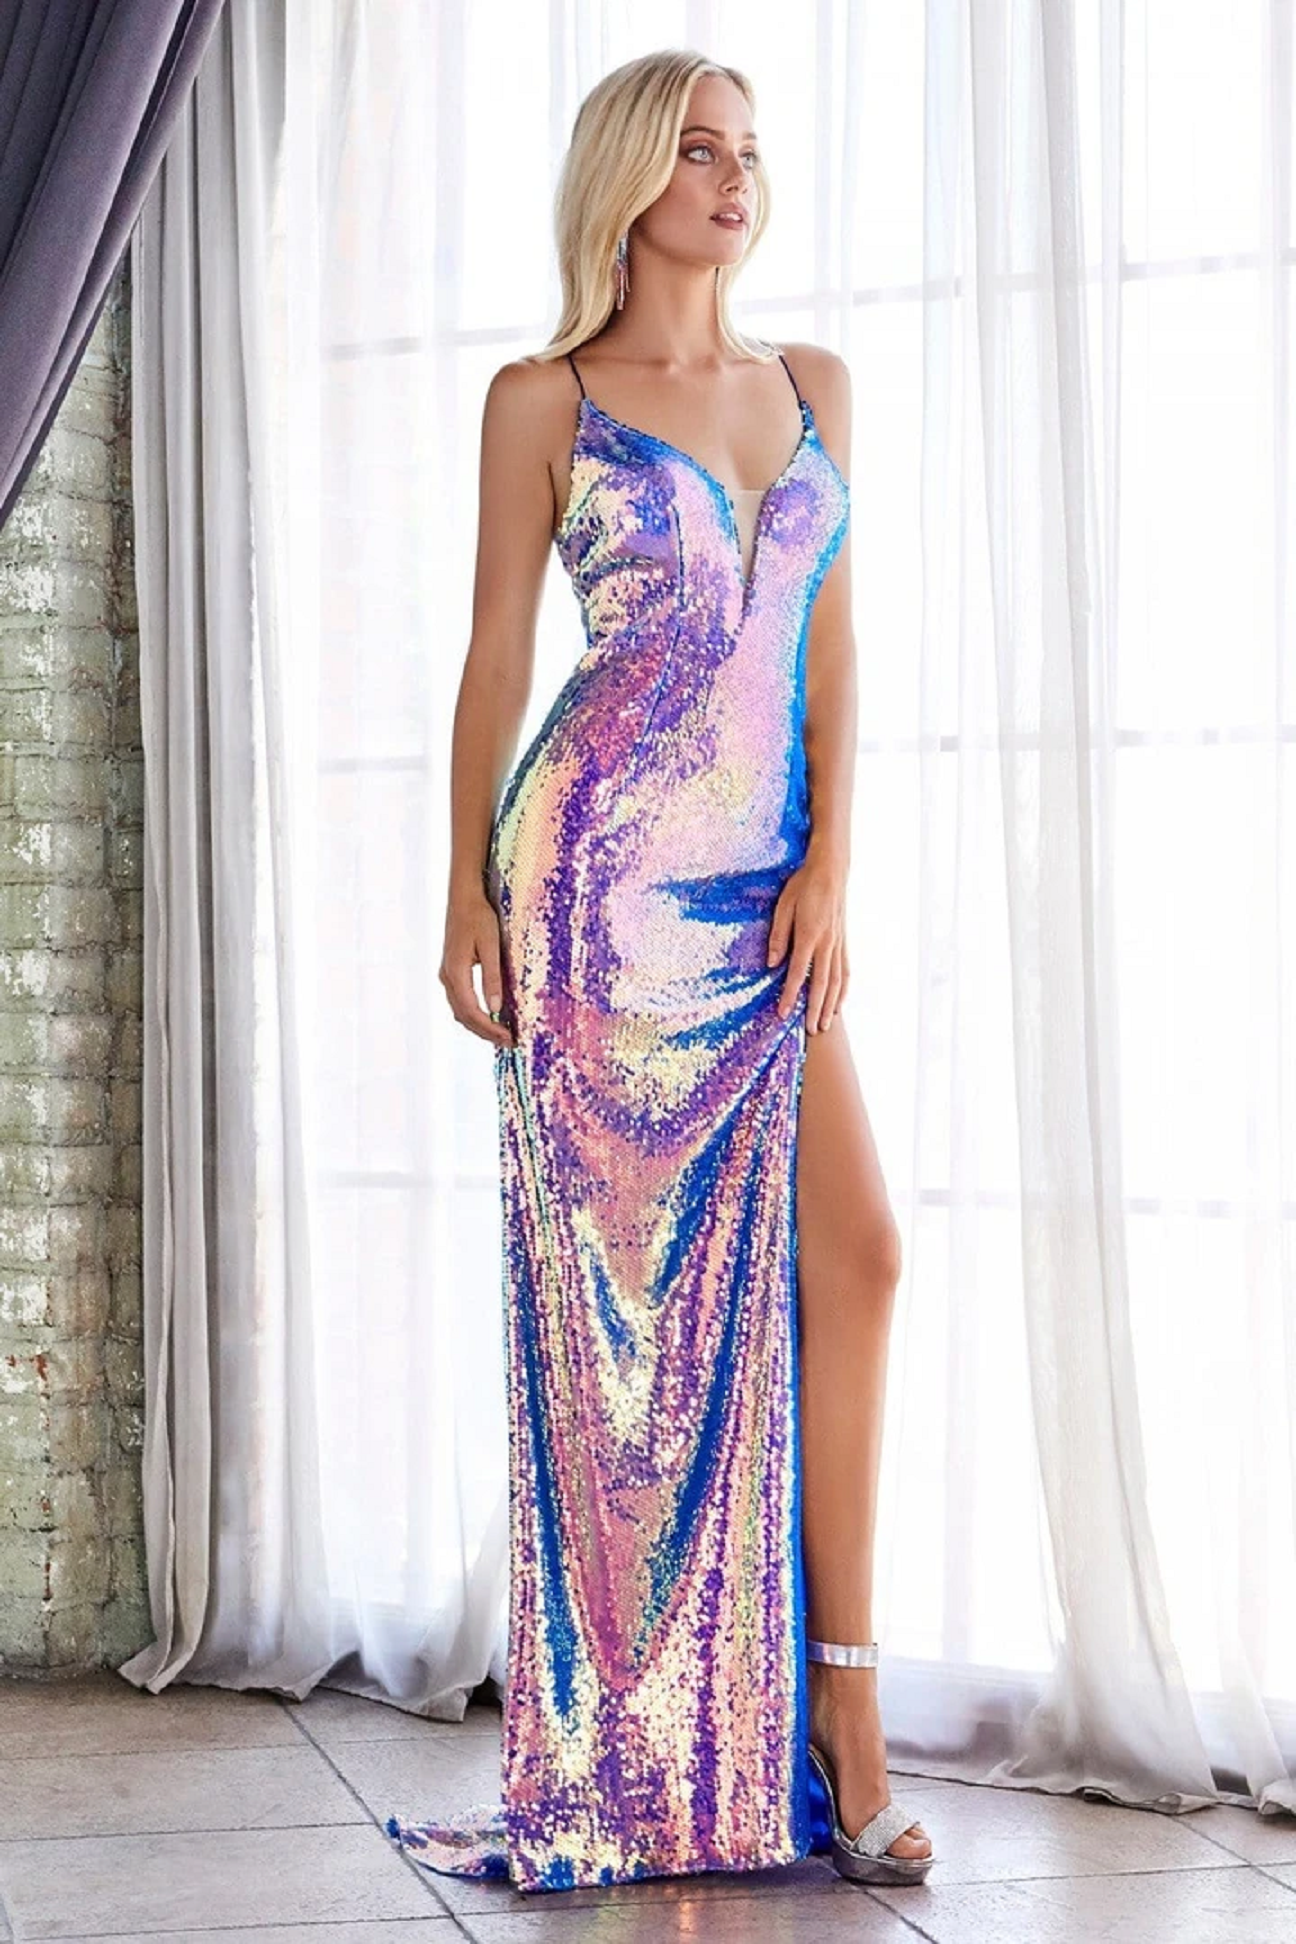 Best bling dresses online 2021 Long Iridescent Sequined Lace-Up Back with Deep V-Neck Sleeveless Elegant Strap Gown